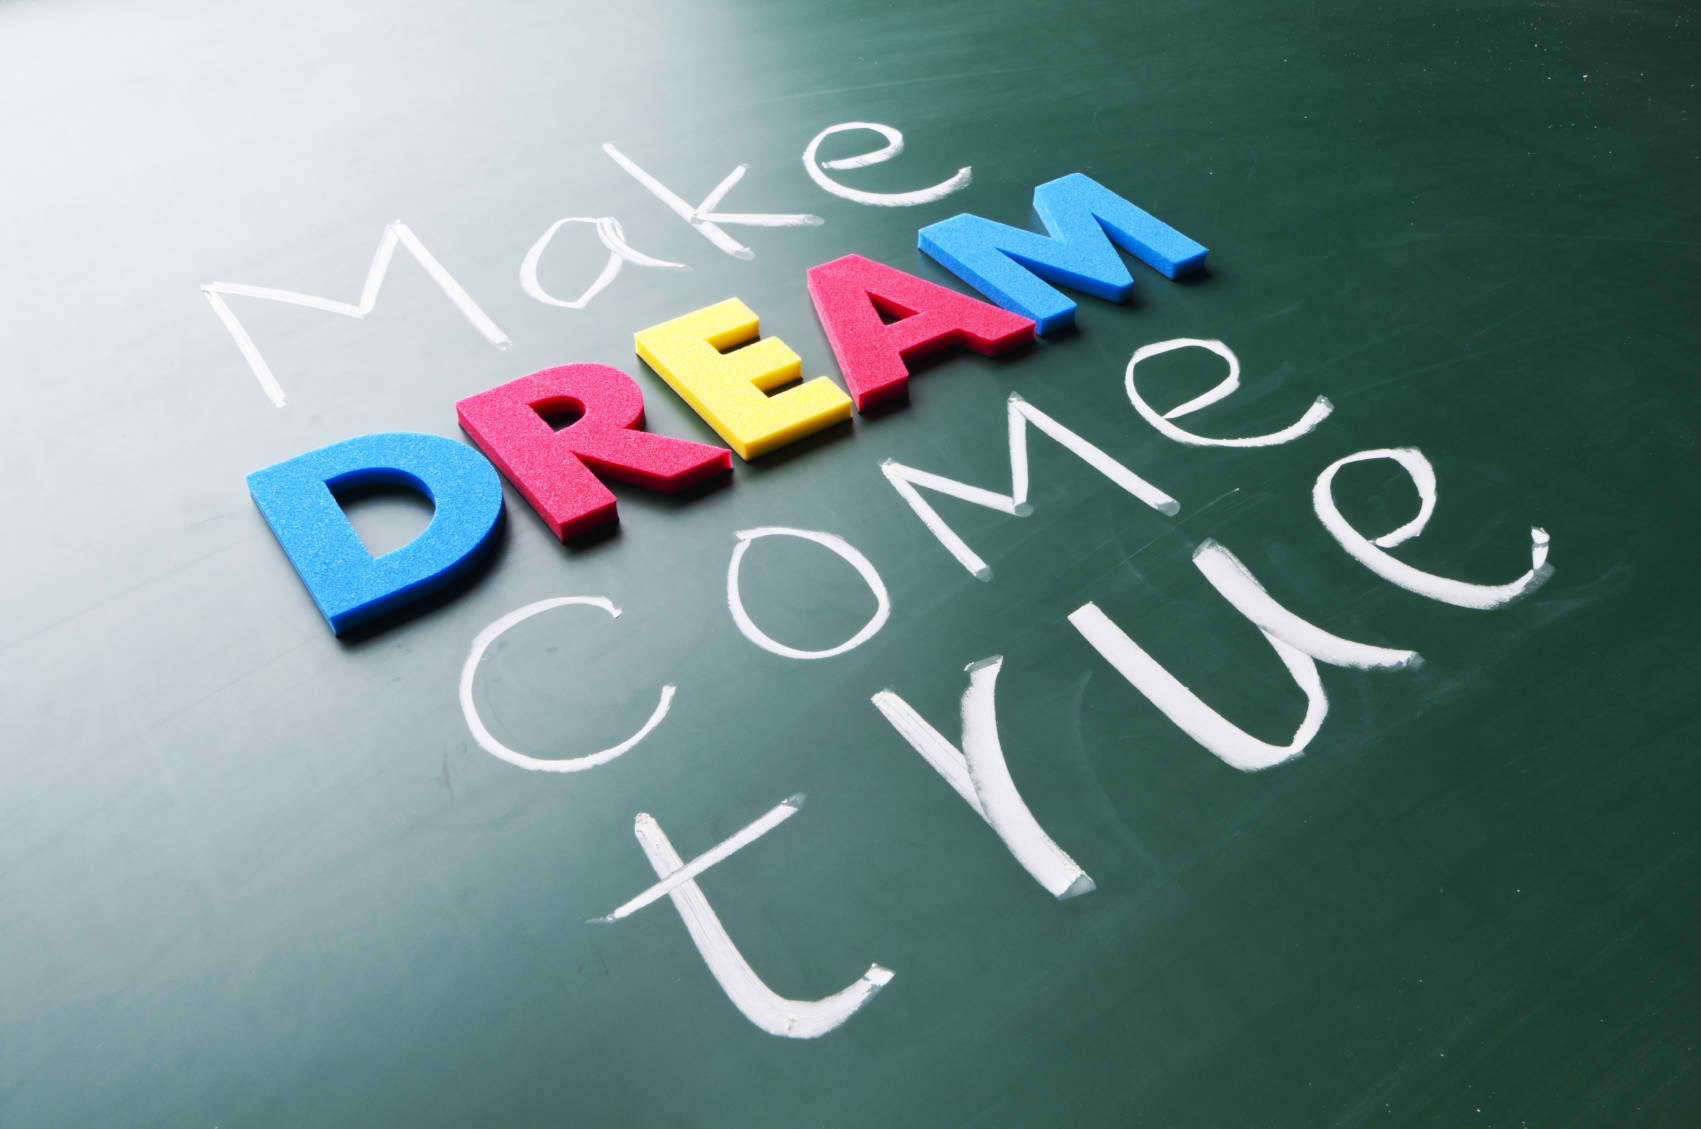 Todayinhistory its make your dreams come true day online todayinhistory its make your dreams come true day online entertainment and lifestyle magazine in nigeria thecheapjerseys Choice Image